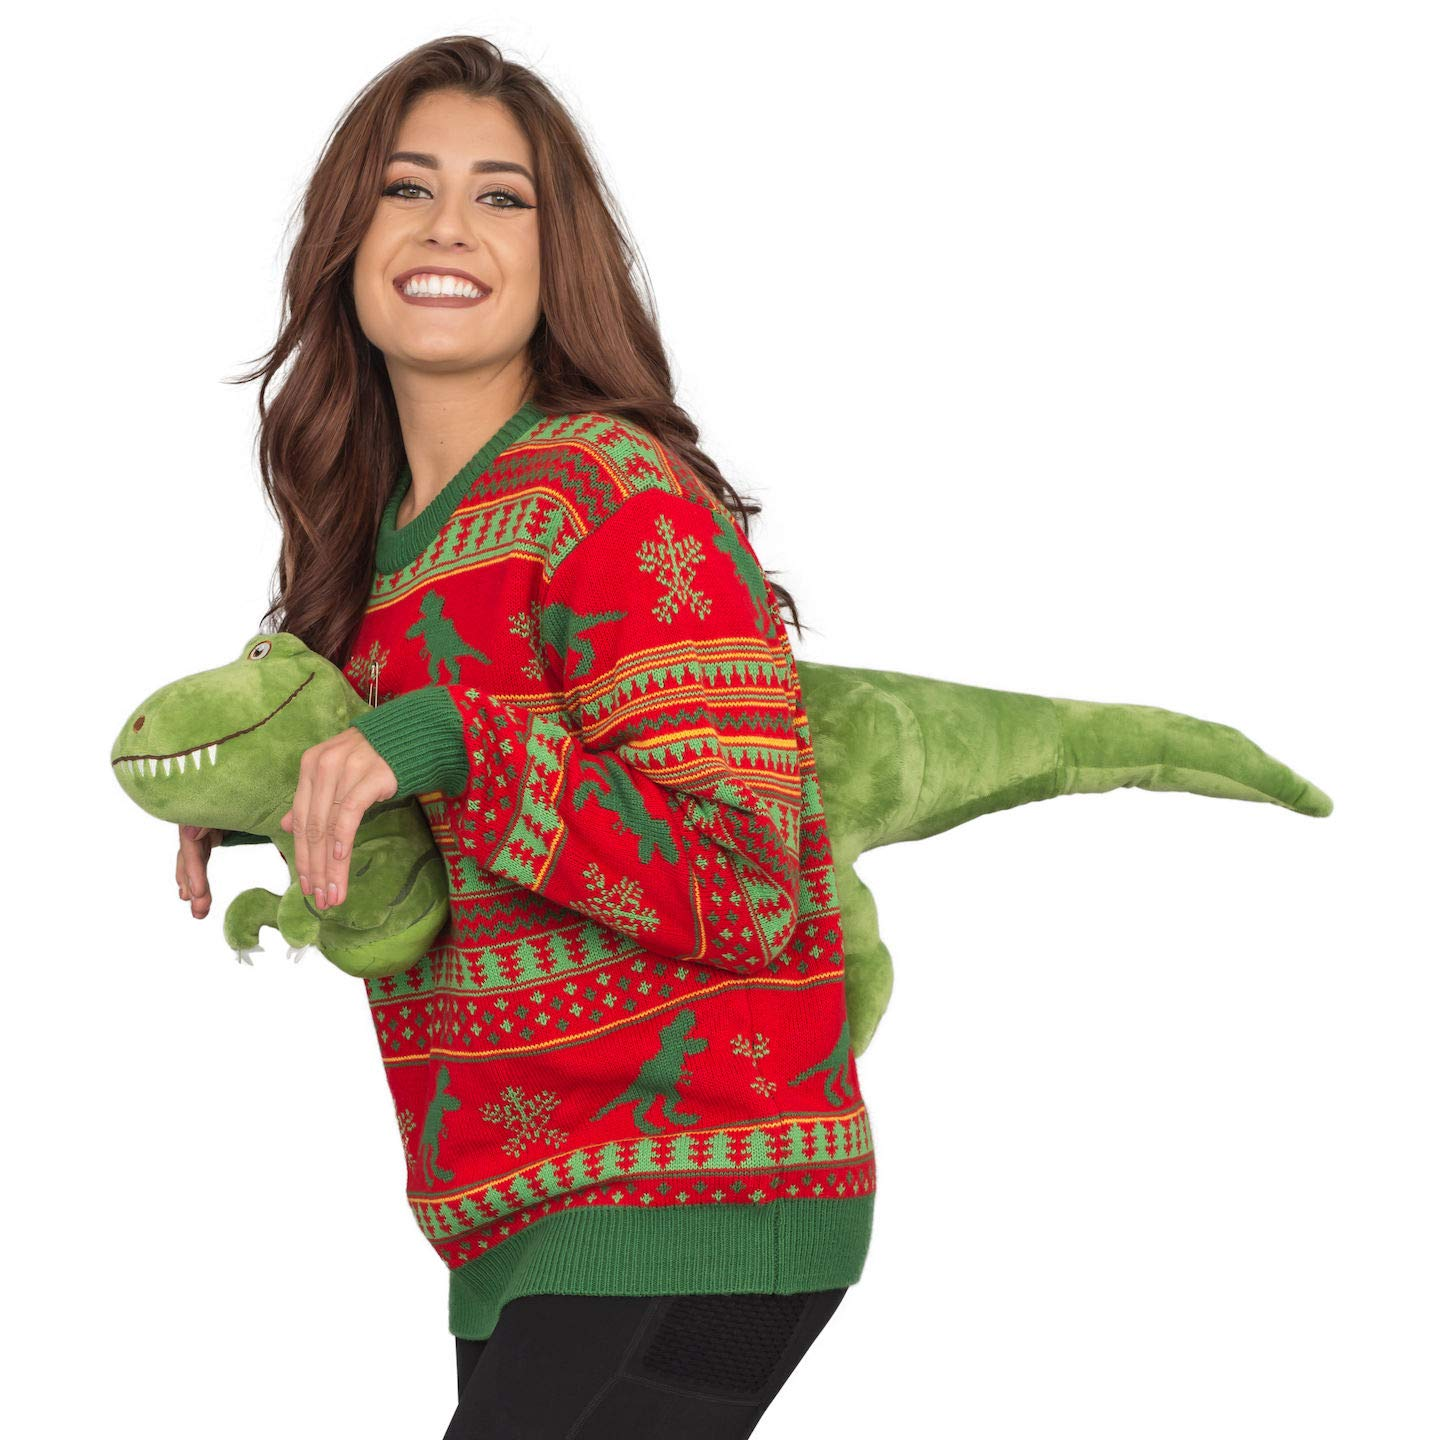 T Rex Ugly Christmas Sweater.Amazon Com 3d T Rex Red And Green Adult Ugly Christmas